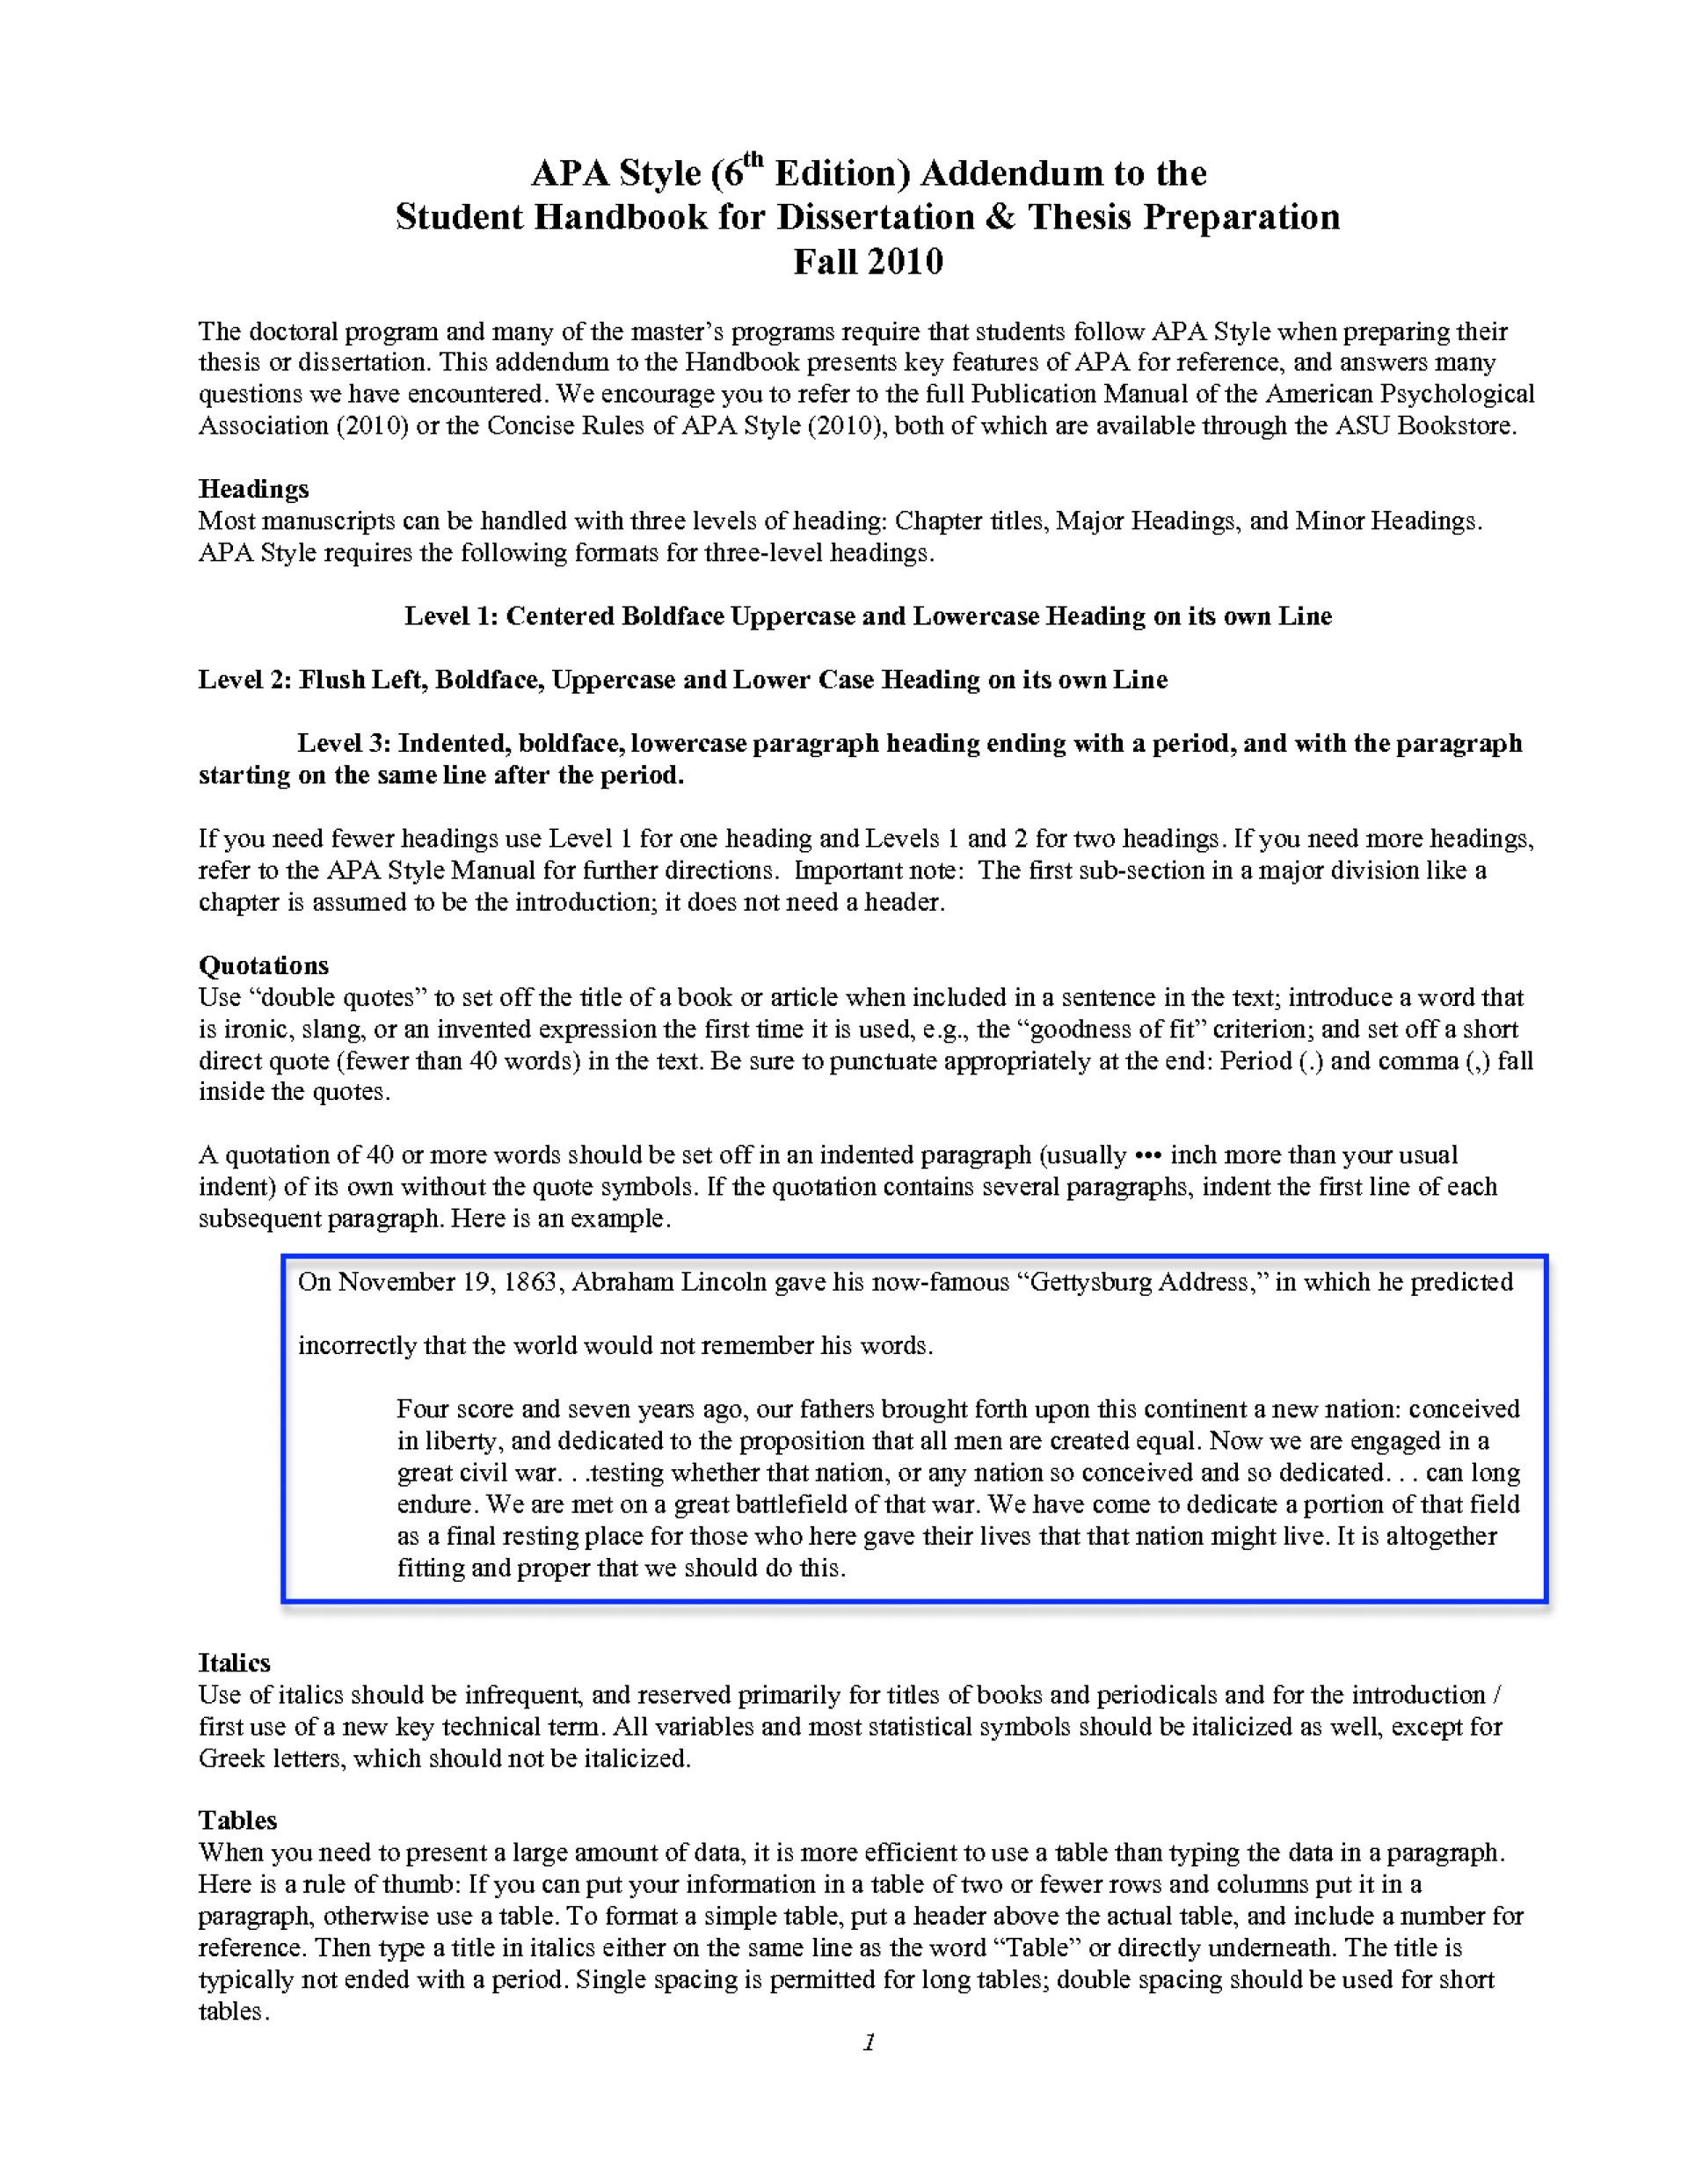 004 Apa Format Research Paper Example 6th Edition Sample Colesecolossus Elegant Header Archaicawful 2015 1920